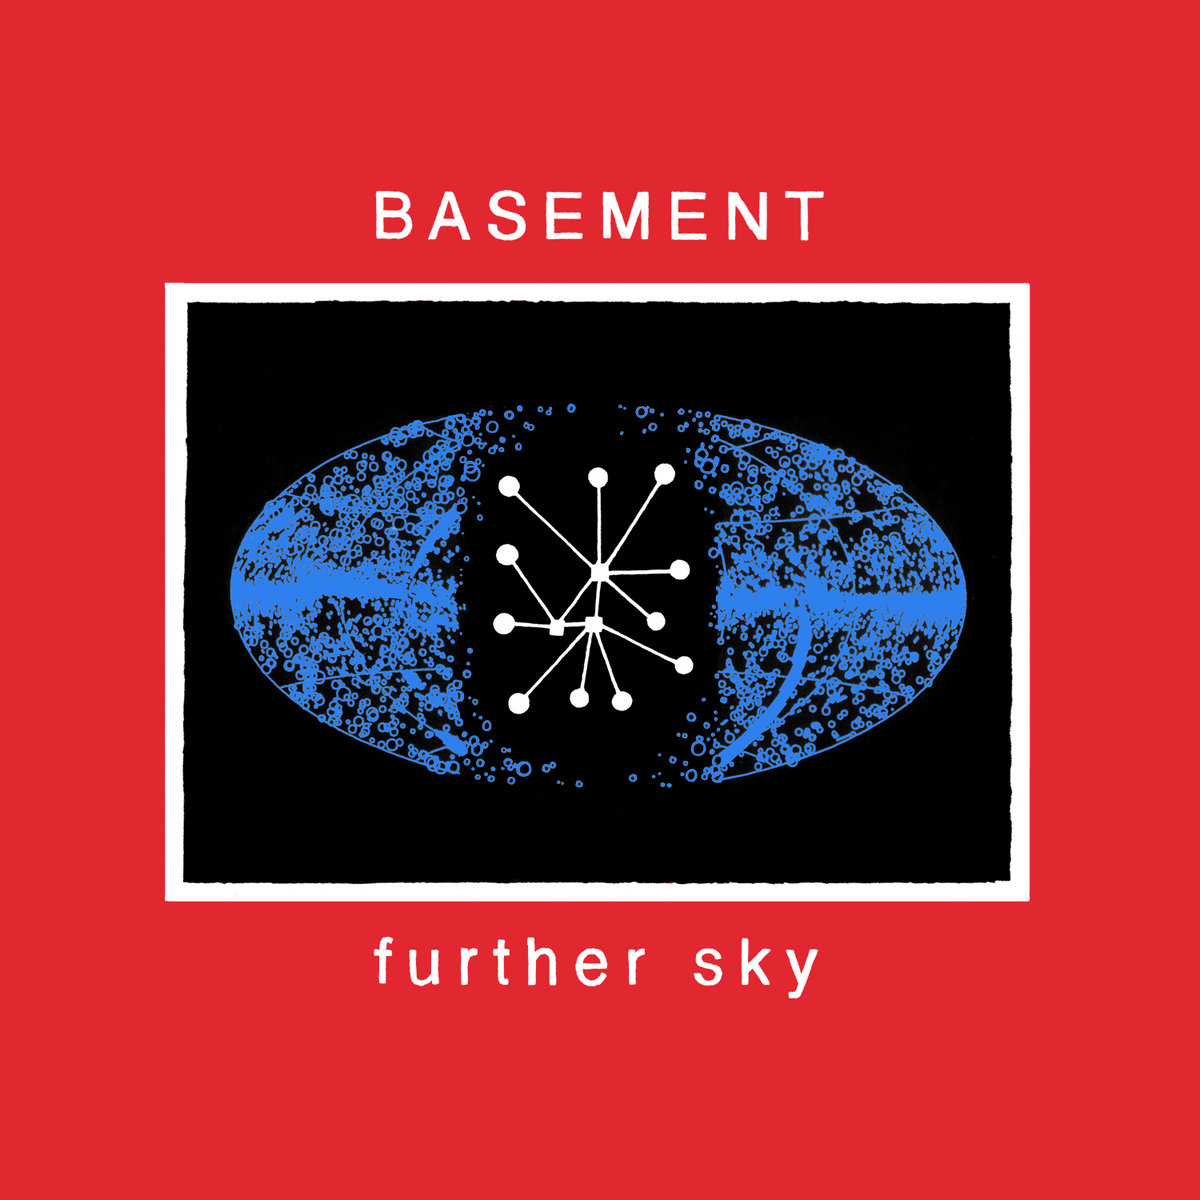 Basement - further sky   Piper Payne   Run for Cover Records